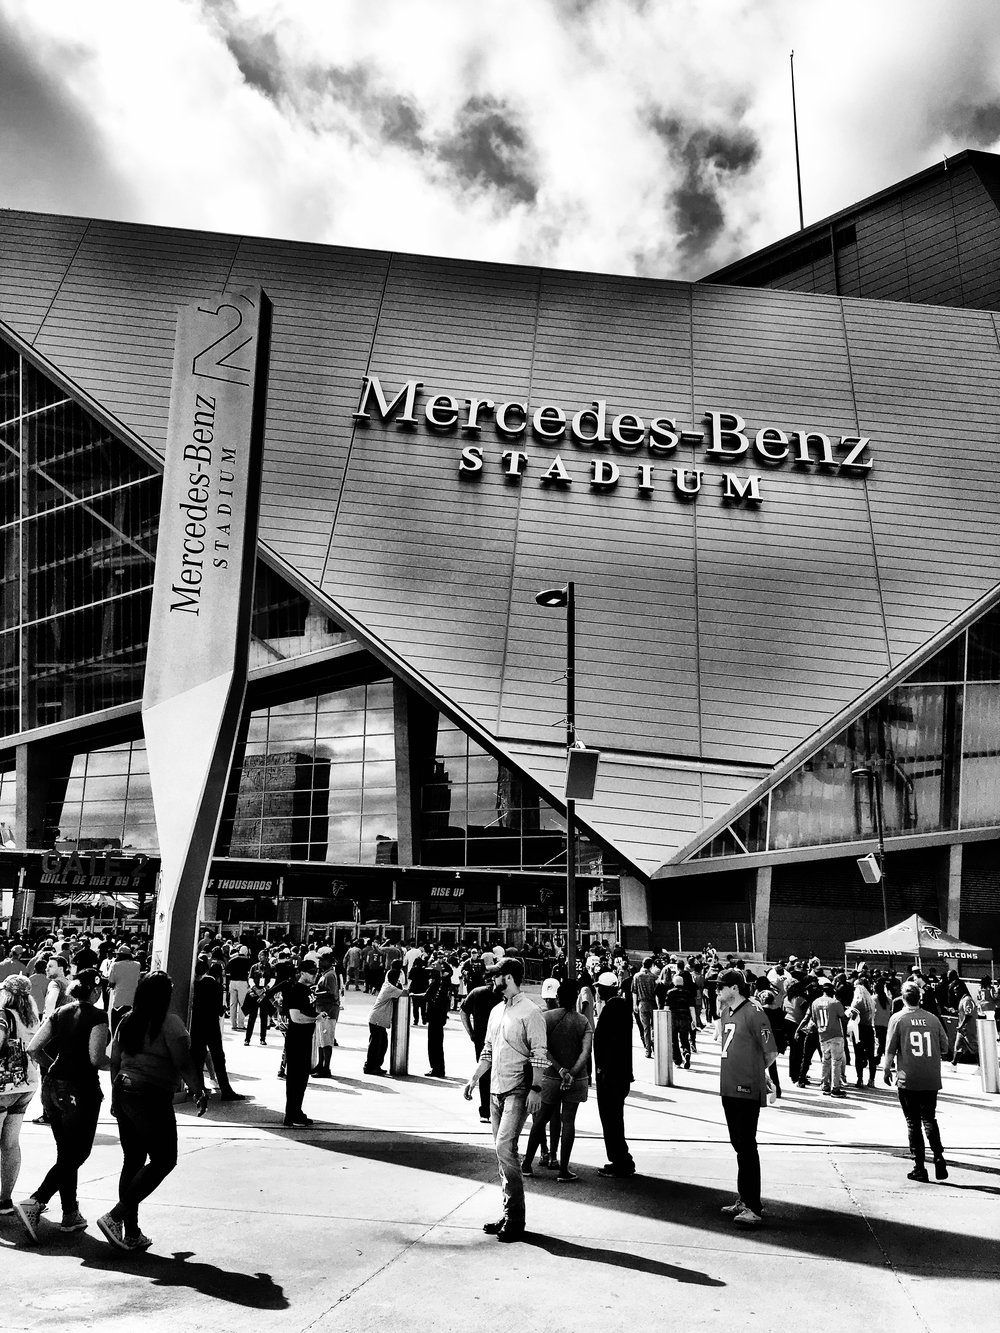 Mercedes Benz Stadium Black and White.jpg